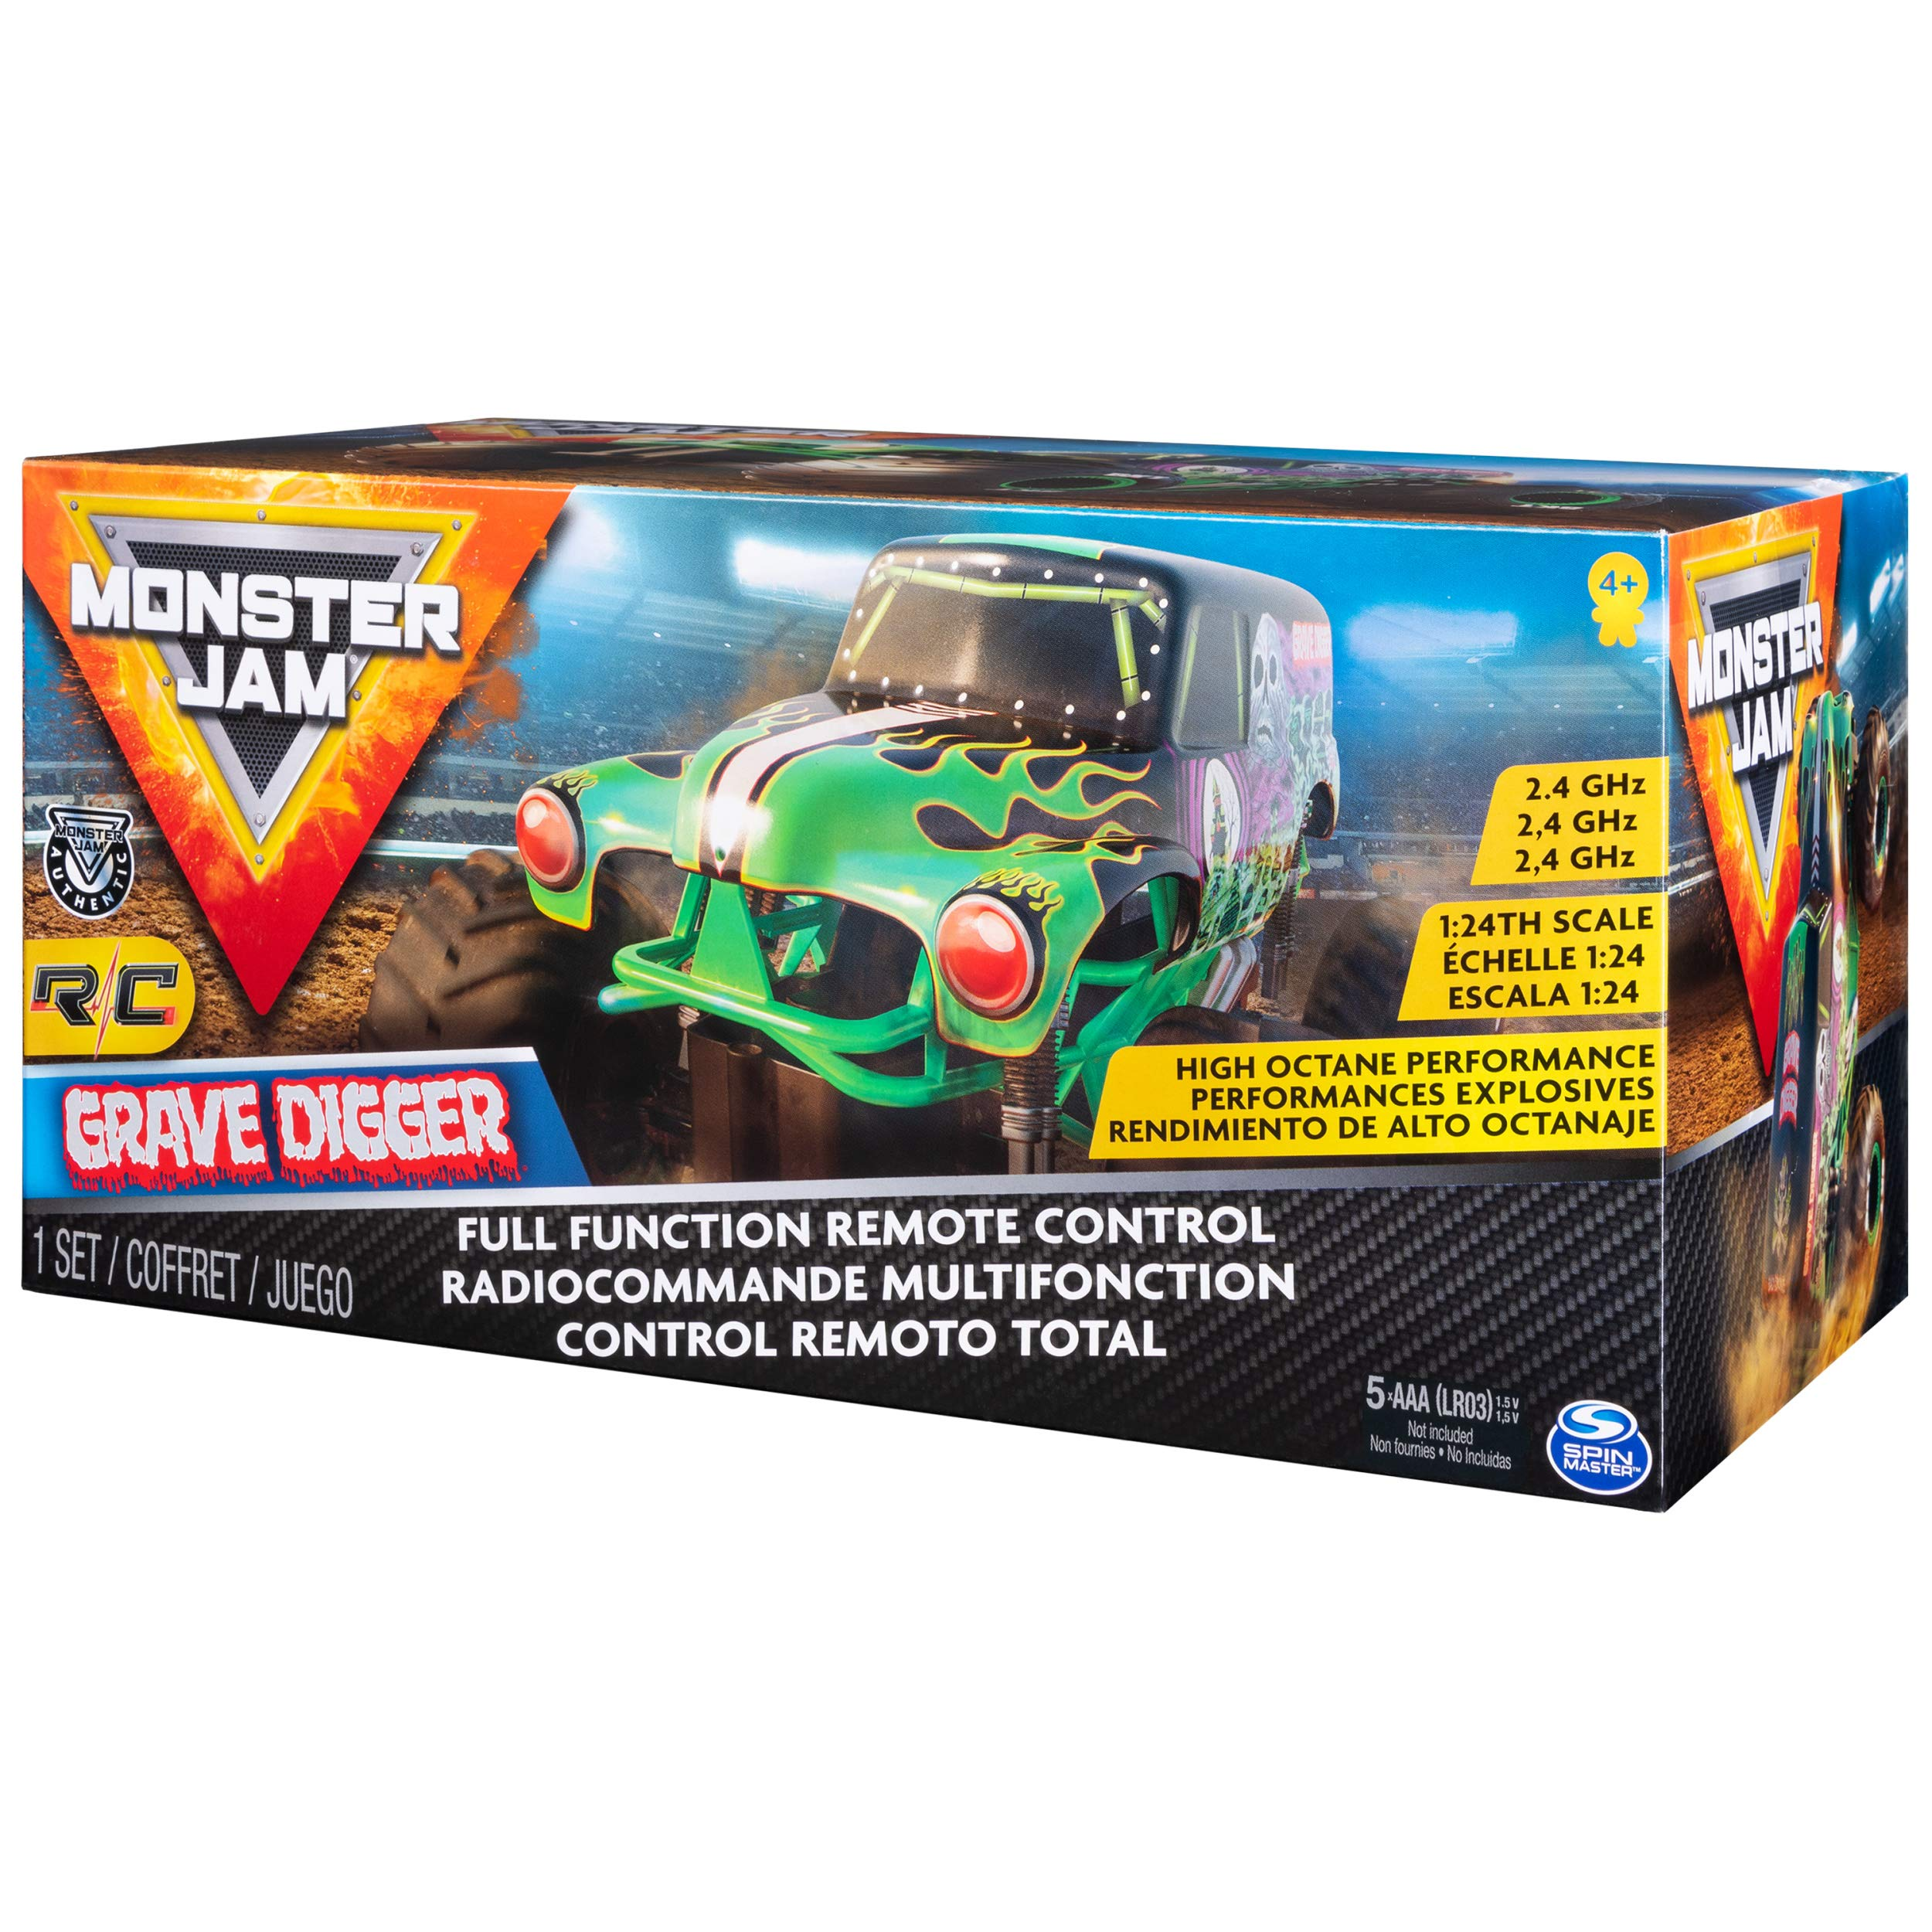 Monster Jam Official Grave Digger Remote Control Monster Truck, 1:24 Scale, 2.4 GHz, for Ages 4 and Up by Monster Jam (Image #6)